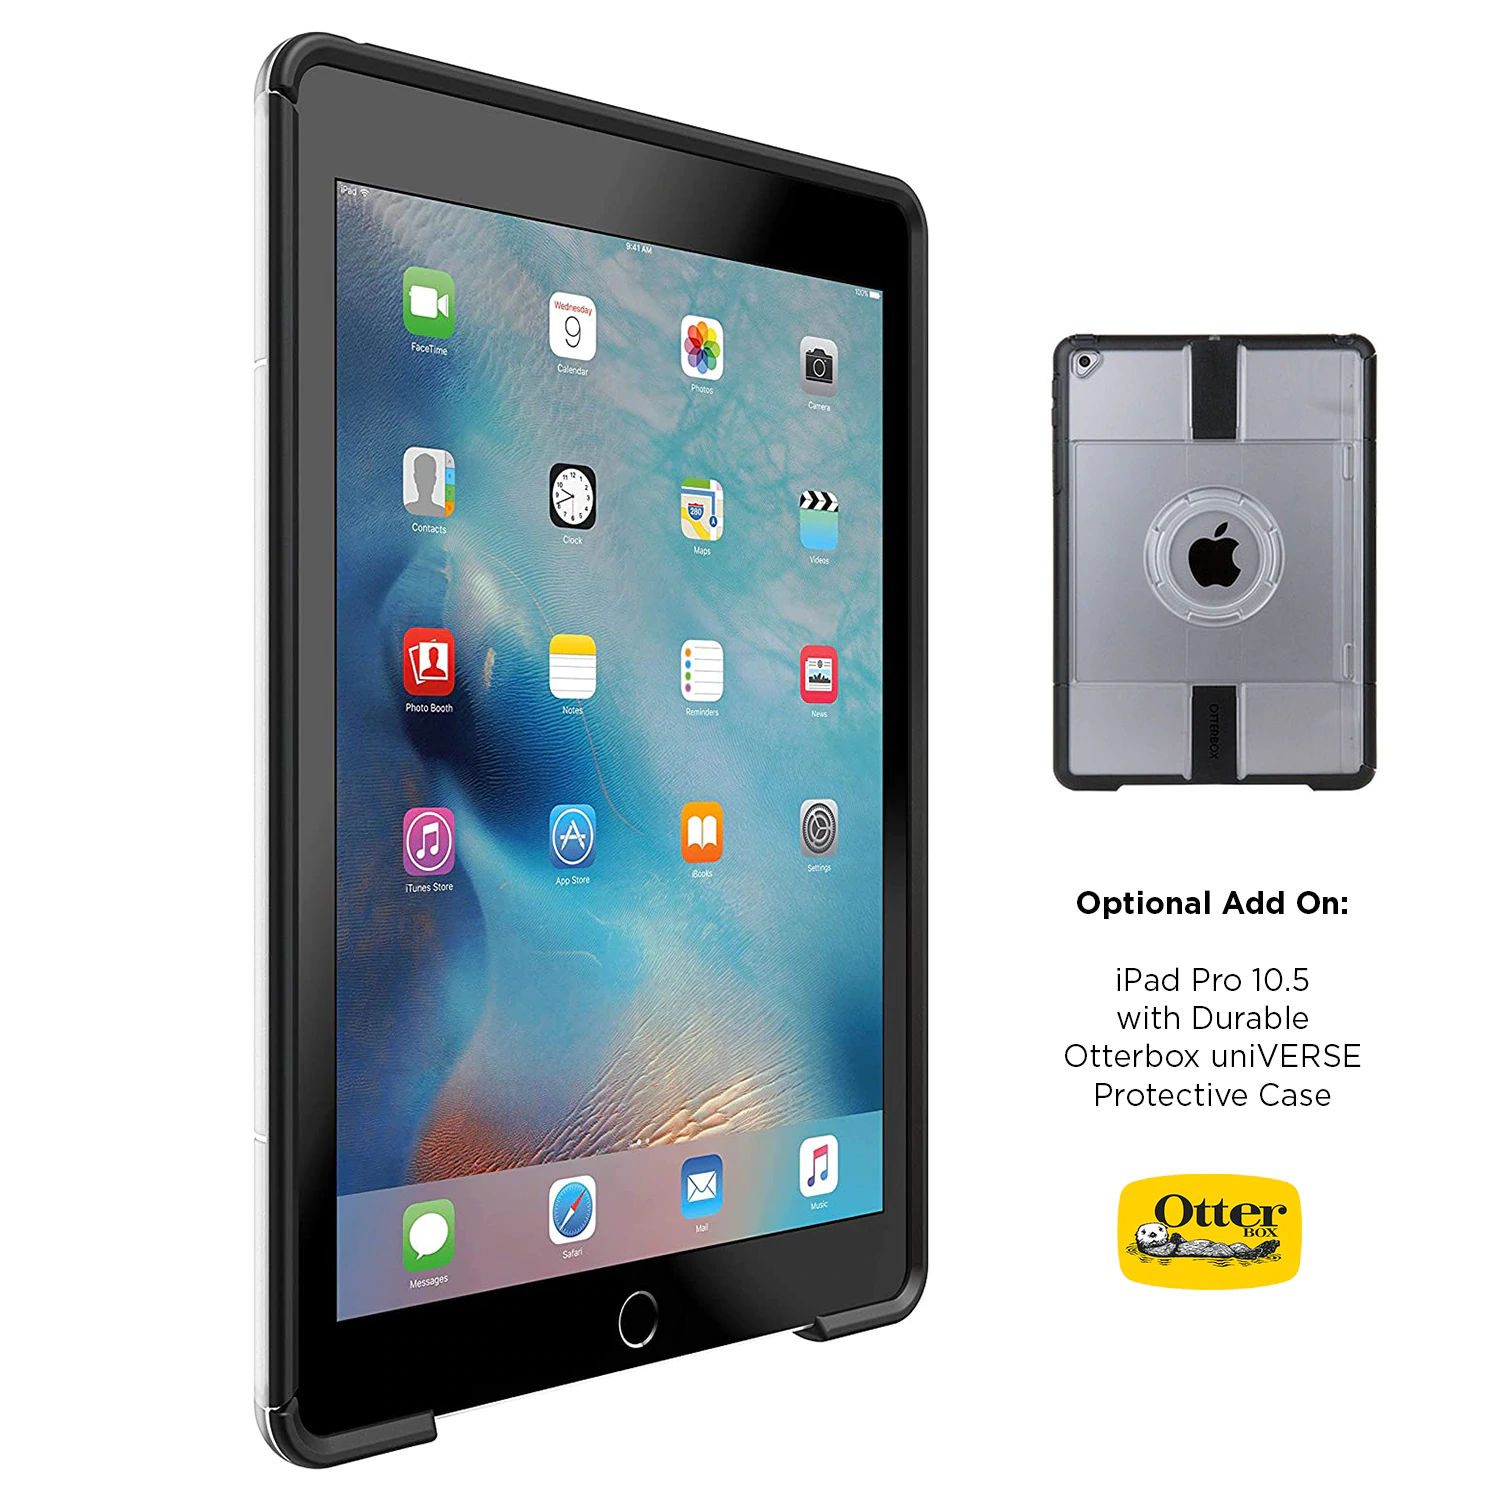 Add an iPad Pro and Otterbox uniVERSE or Defender Case to your order above for a complete package